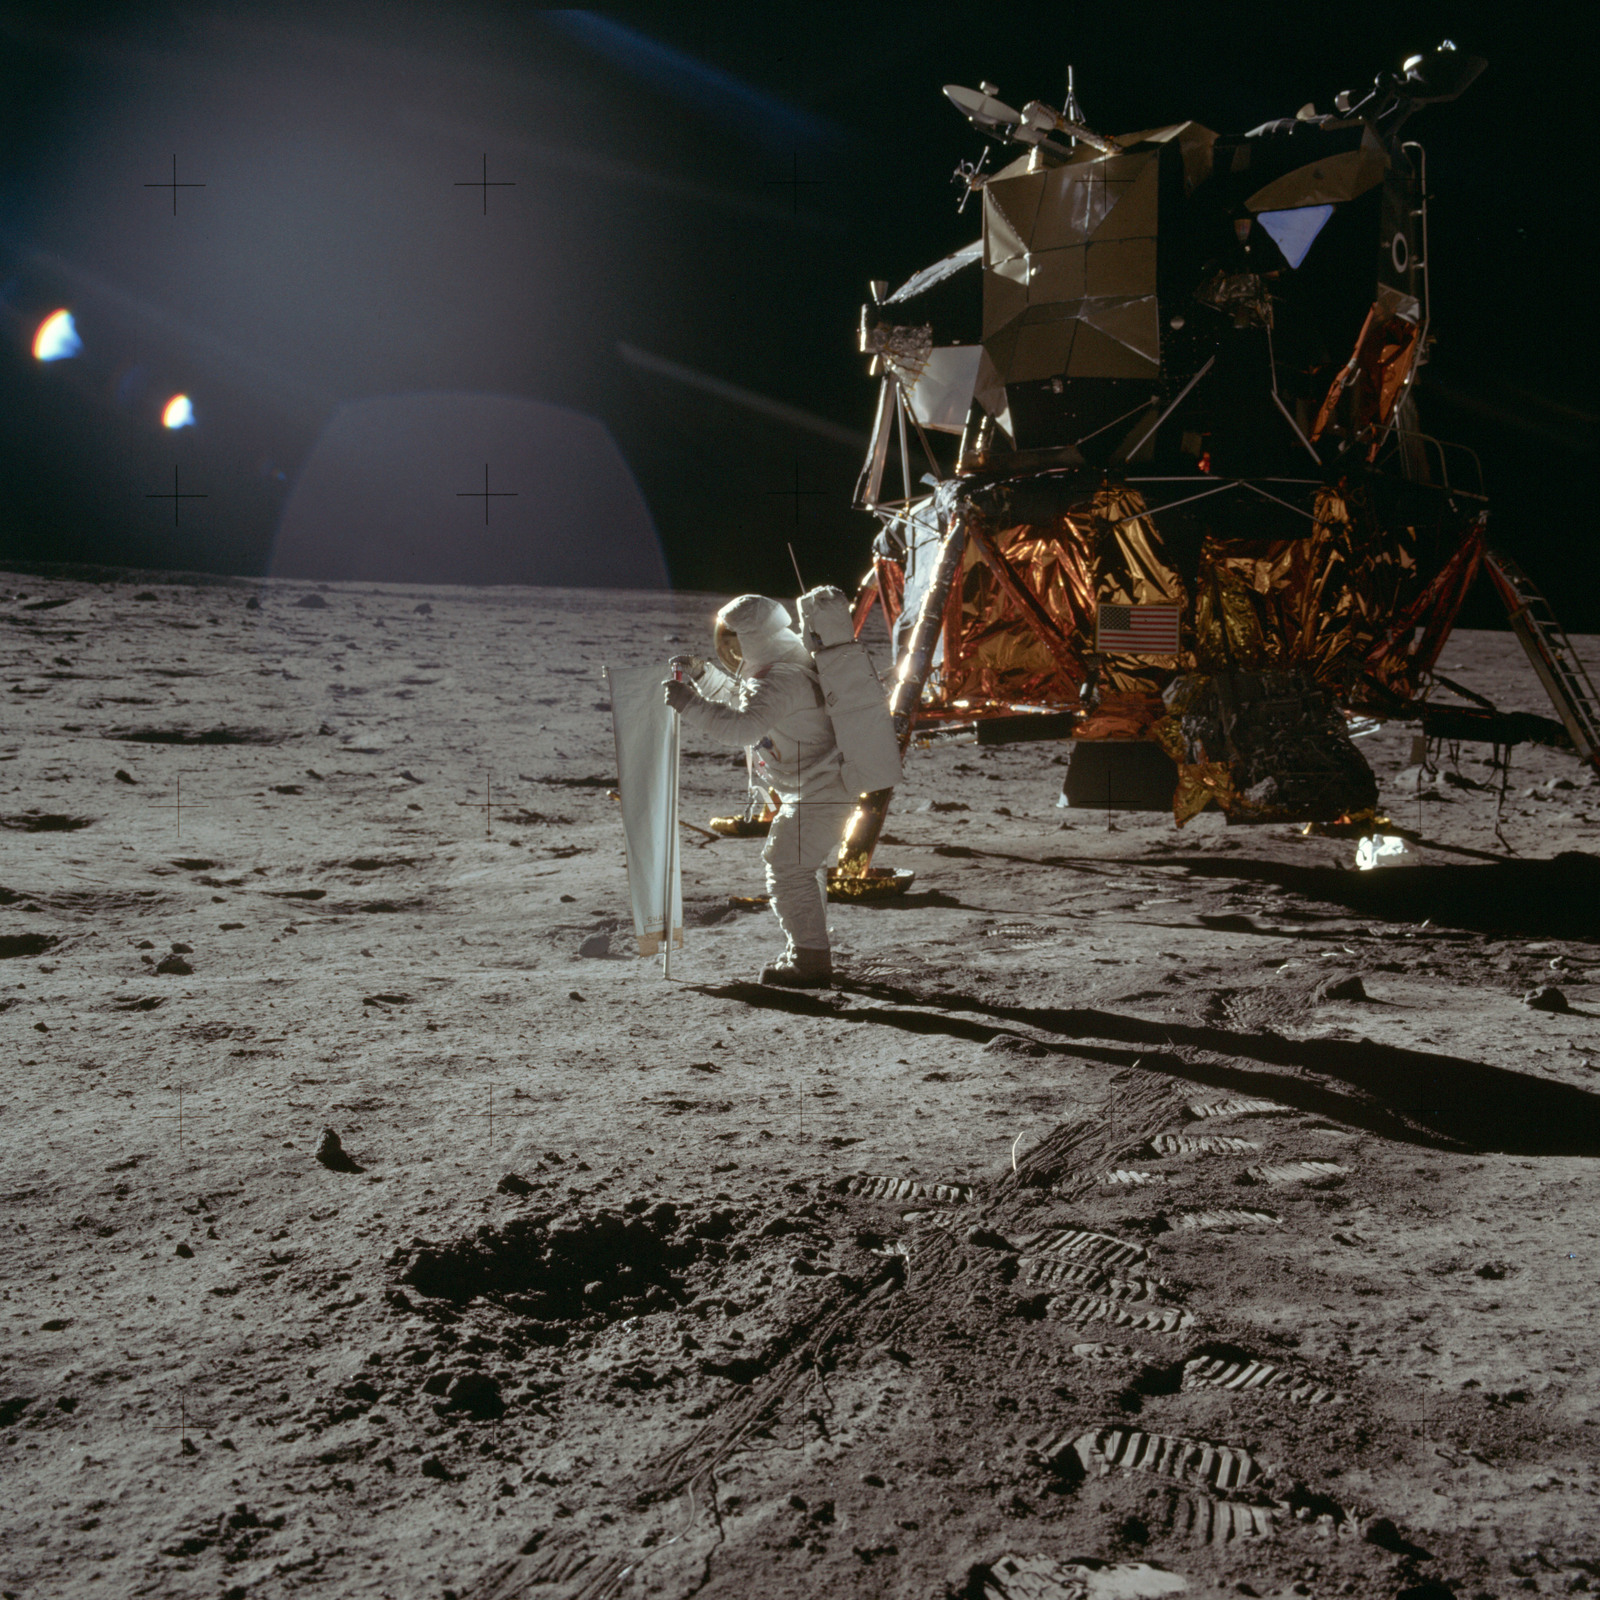 AS11-40-5872 - Apollo 11 - Apollo 11 Mission image - Astronaut Edwin Aldrin sets up the SWC experiment on the lunar surface